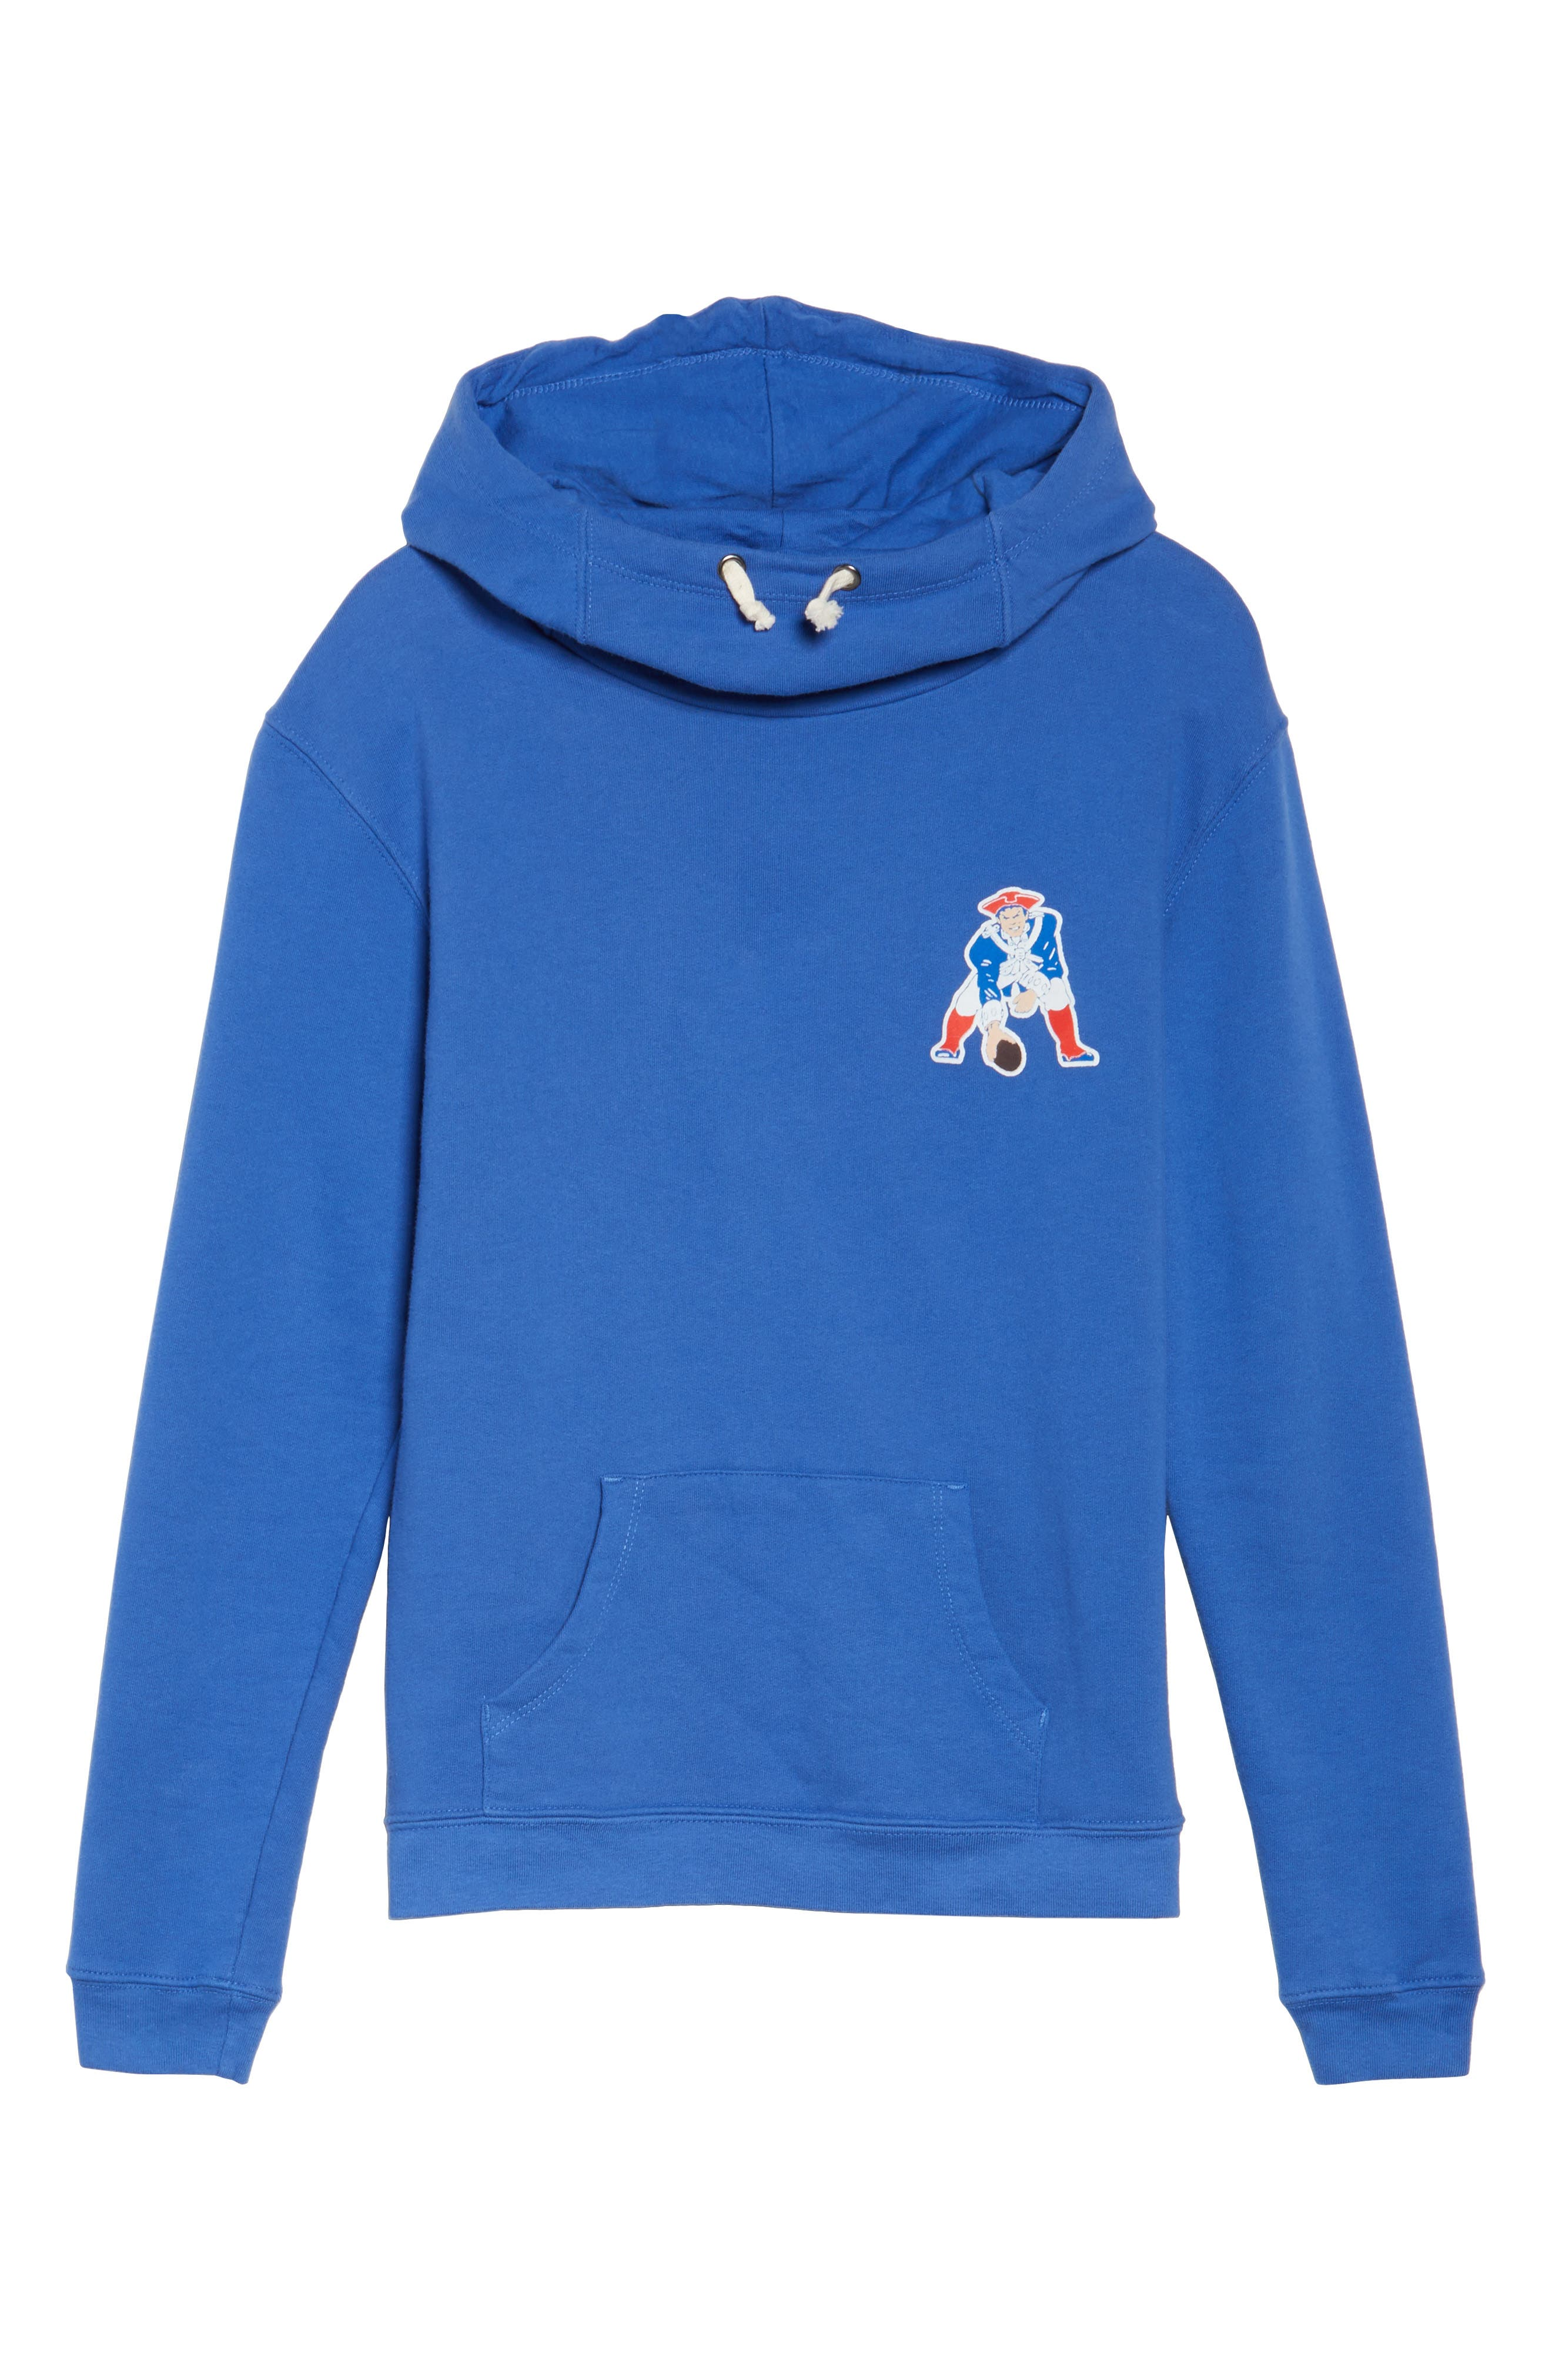 NFL New England Patriots Sunday Hoodie,                             Alternate thumbnail 6, color,                             497